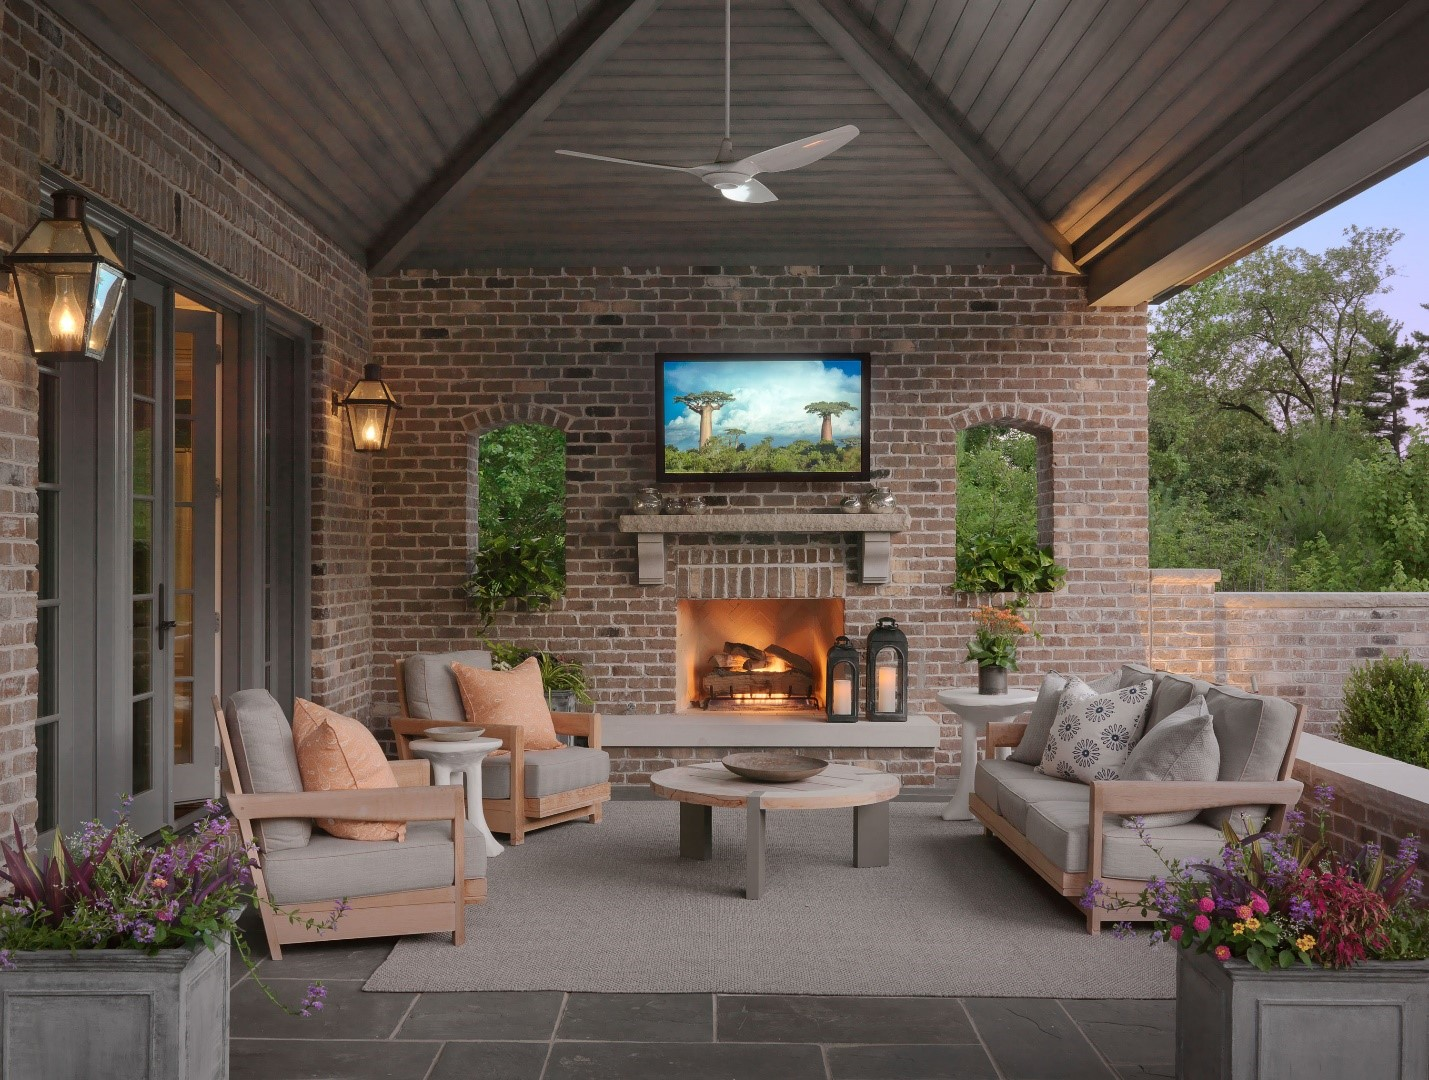 Shake Up Your Social Distancing Experience With an Outdoor TV